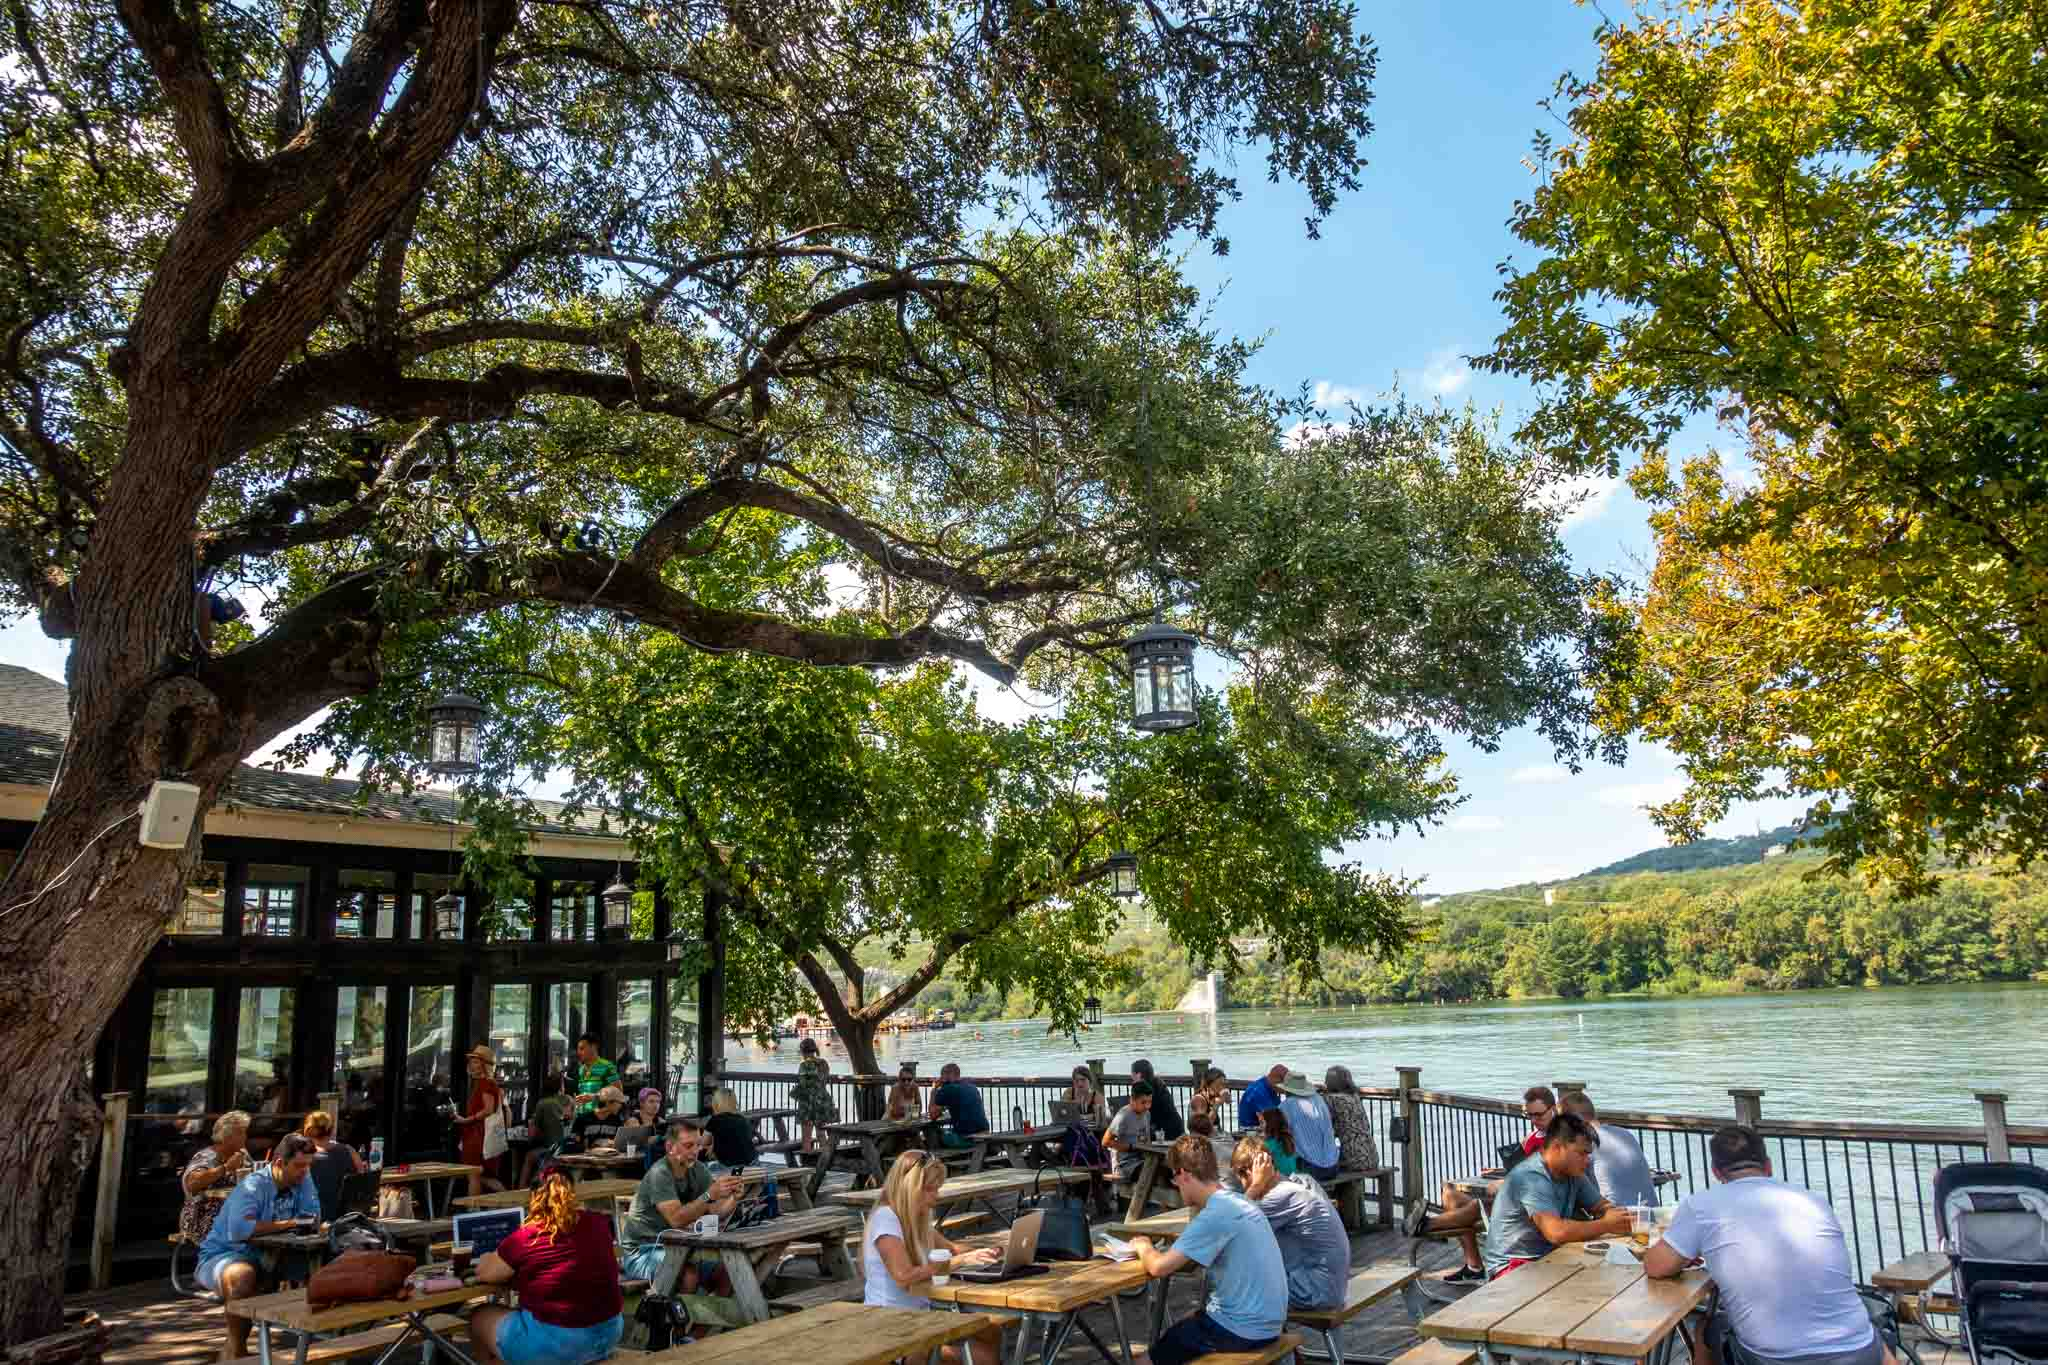 People sitting at picnic tables on a patio by Lake Austin